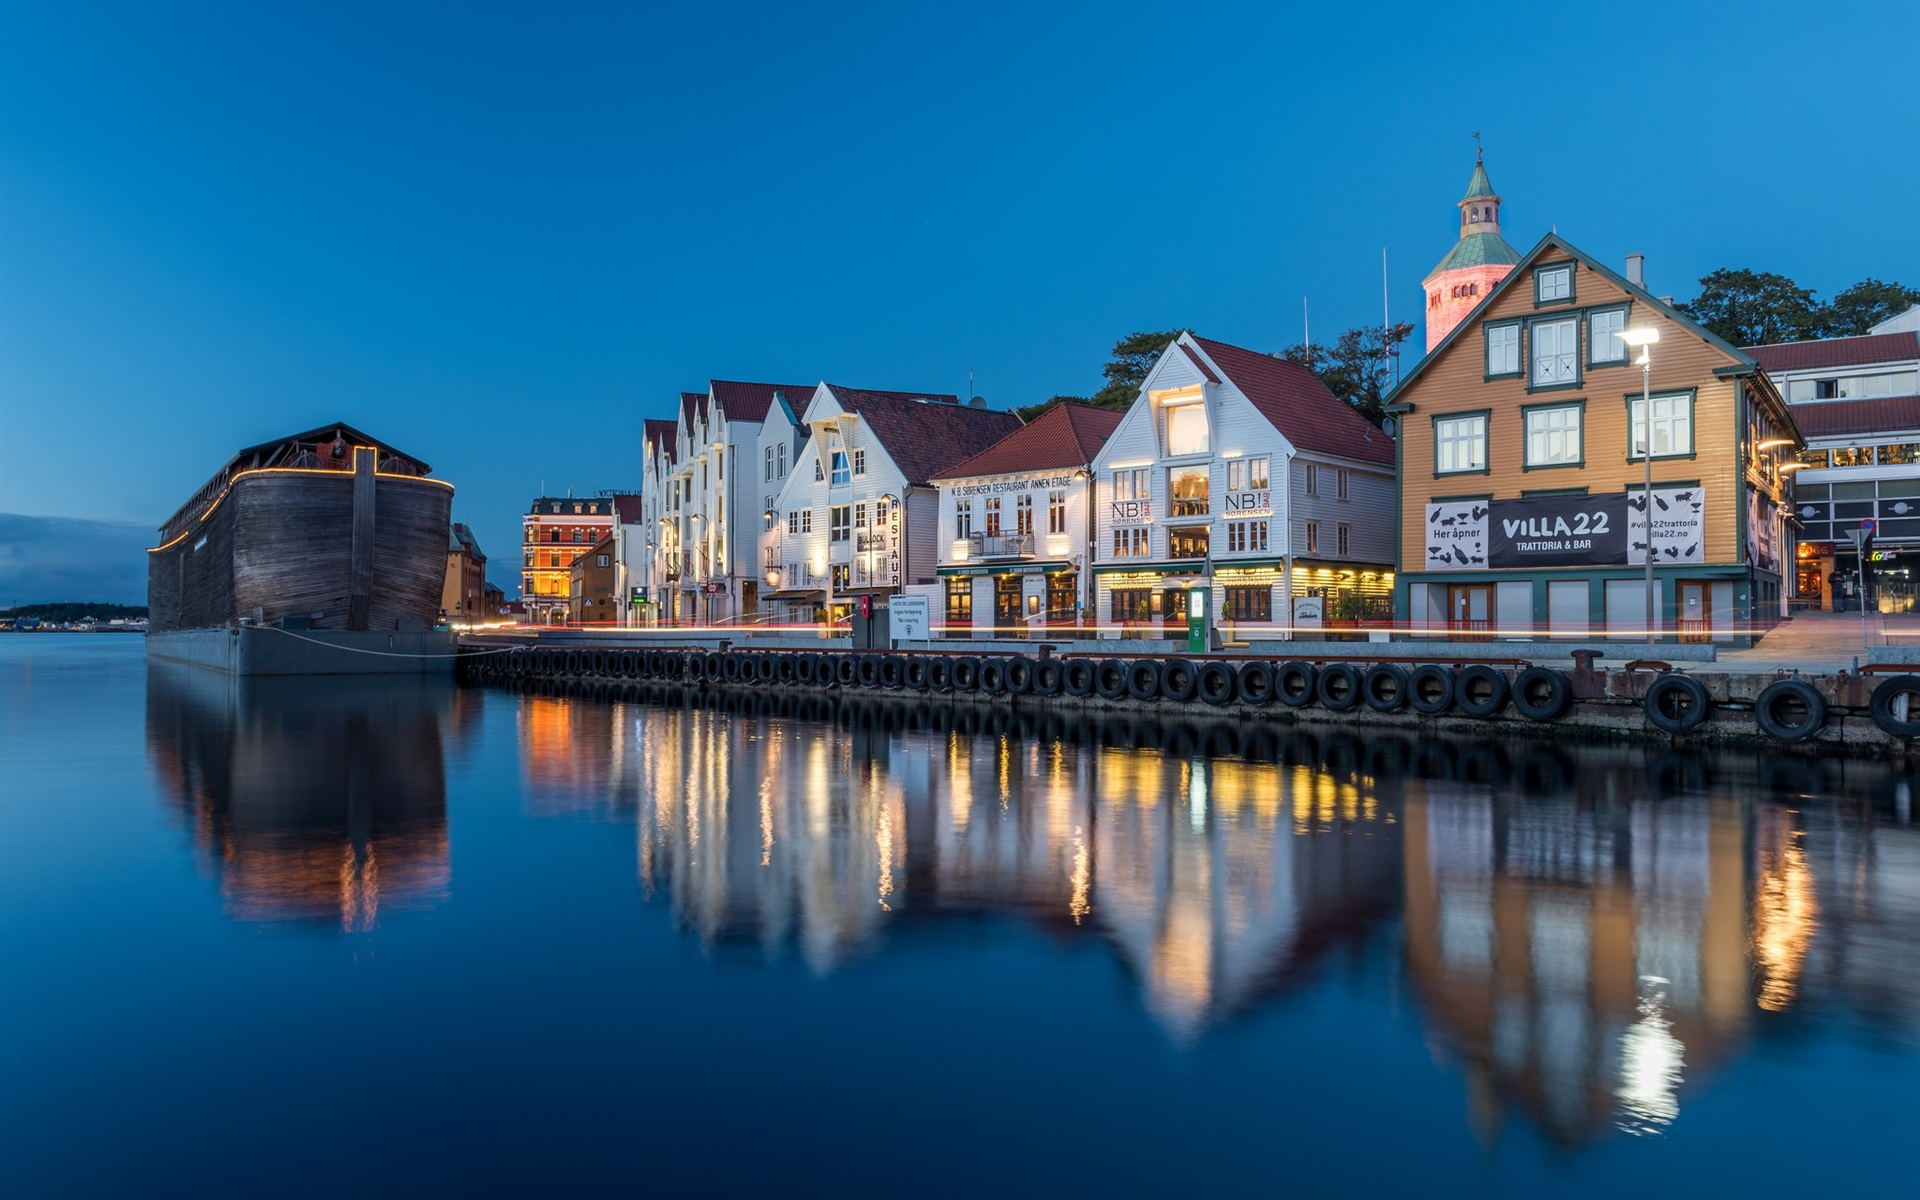 Norway-Stavanger-Rogaland-houses-river-lights-evening_1920x1200